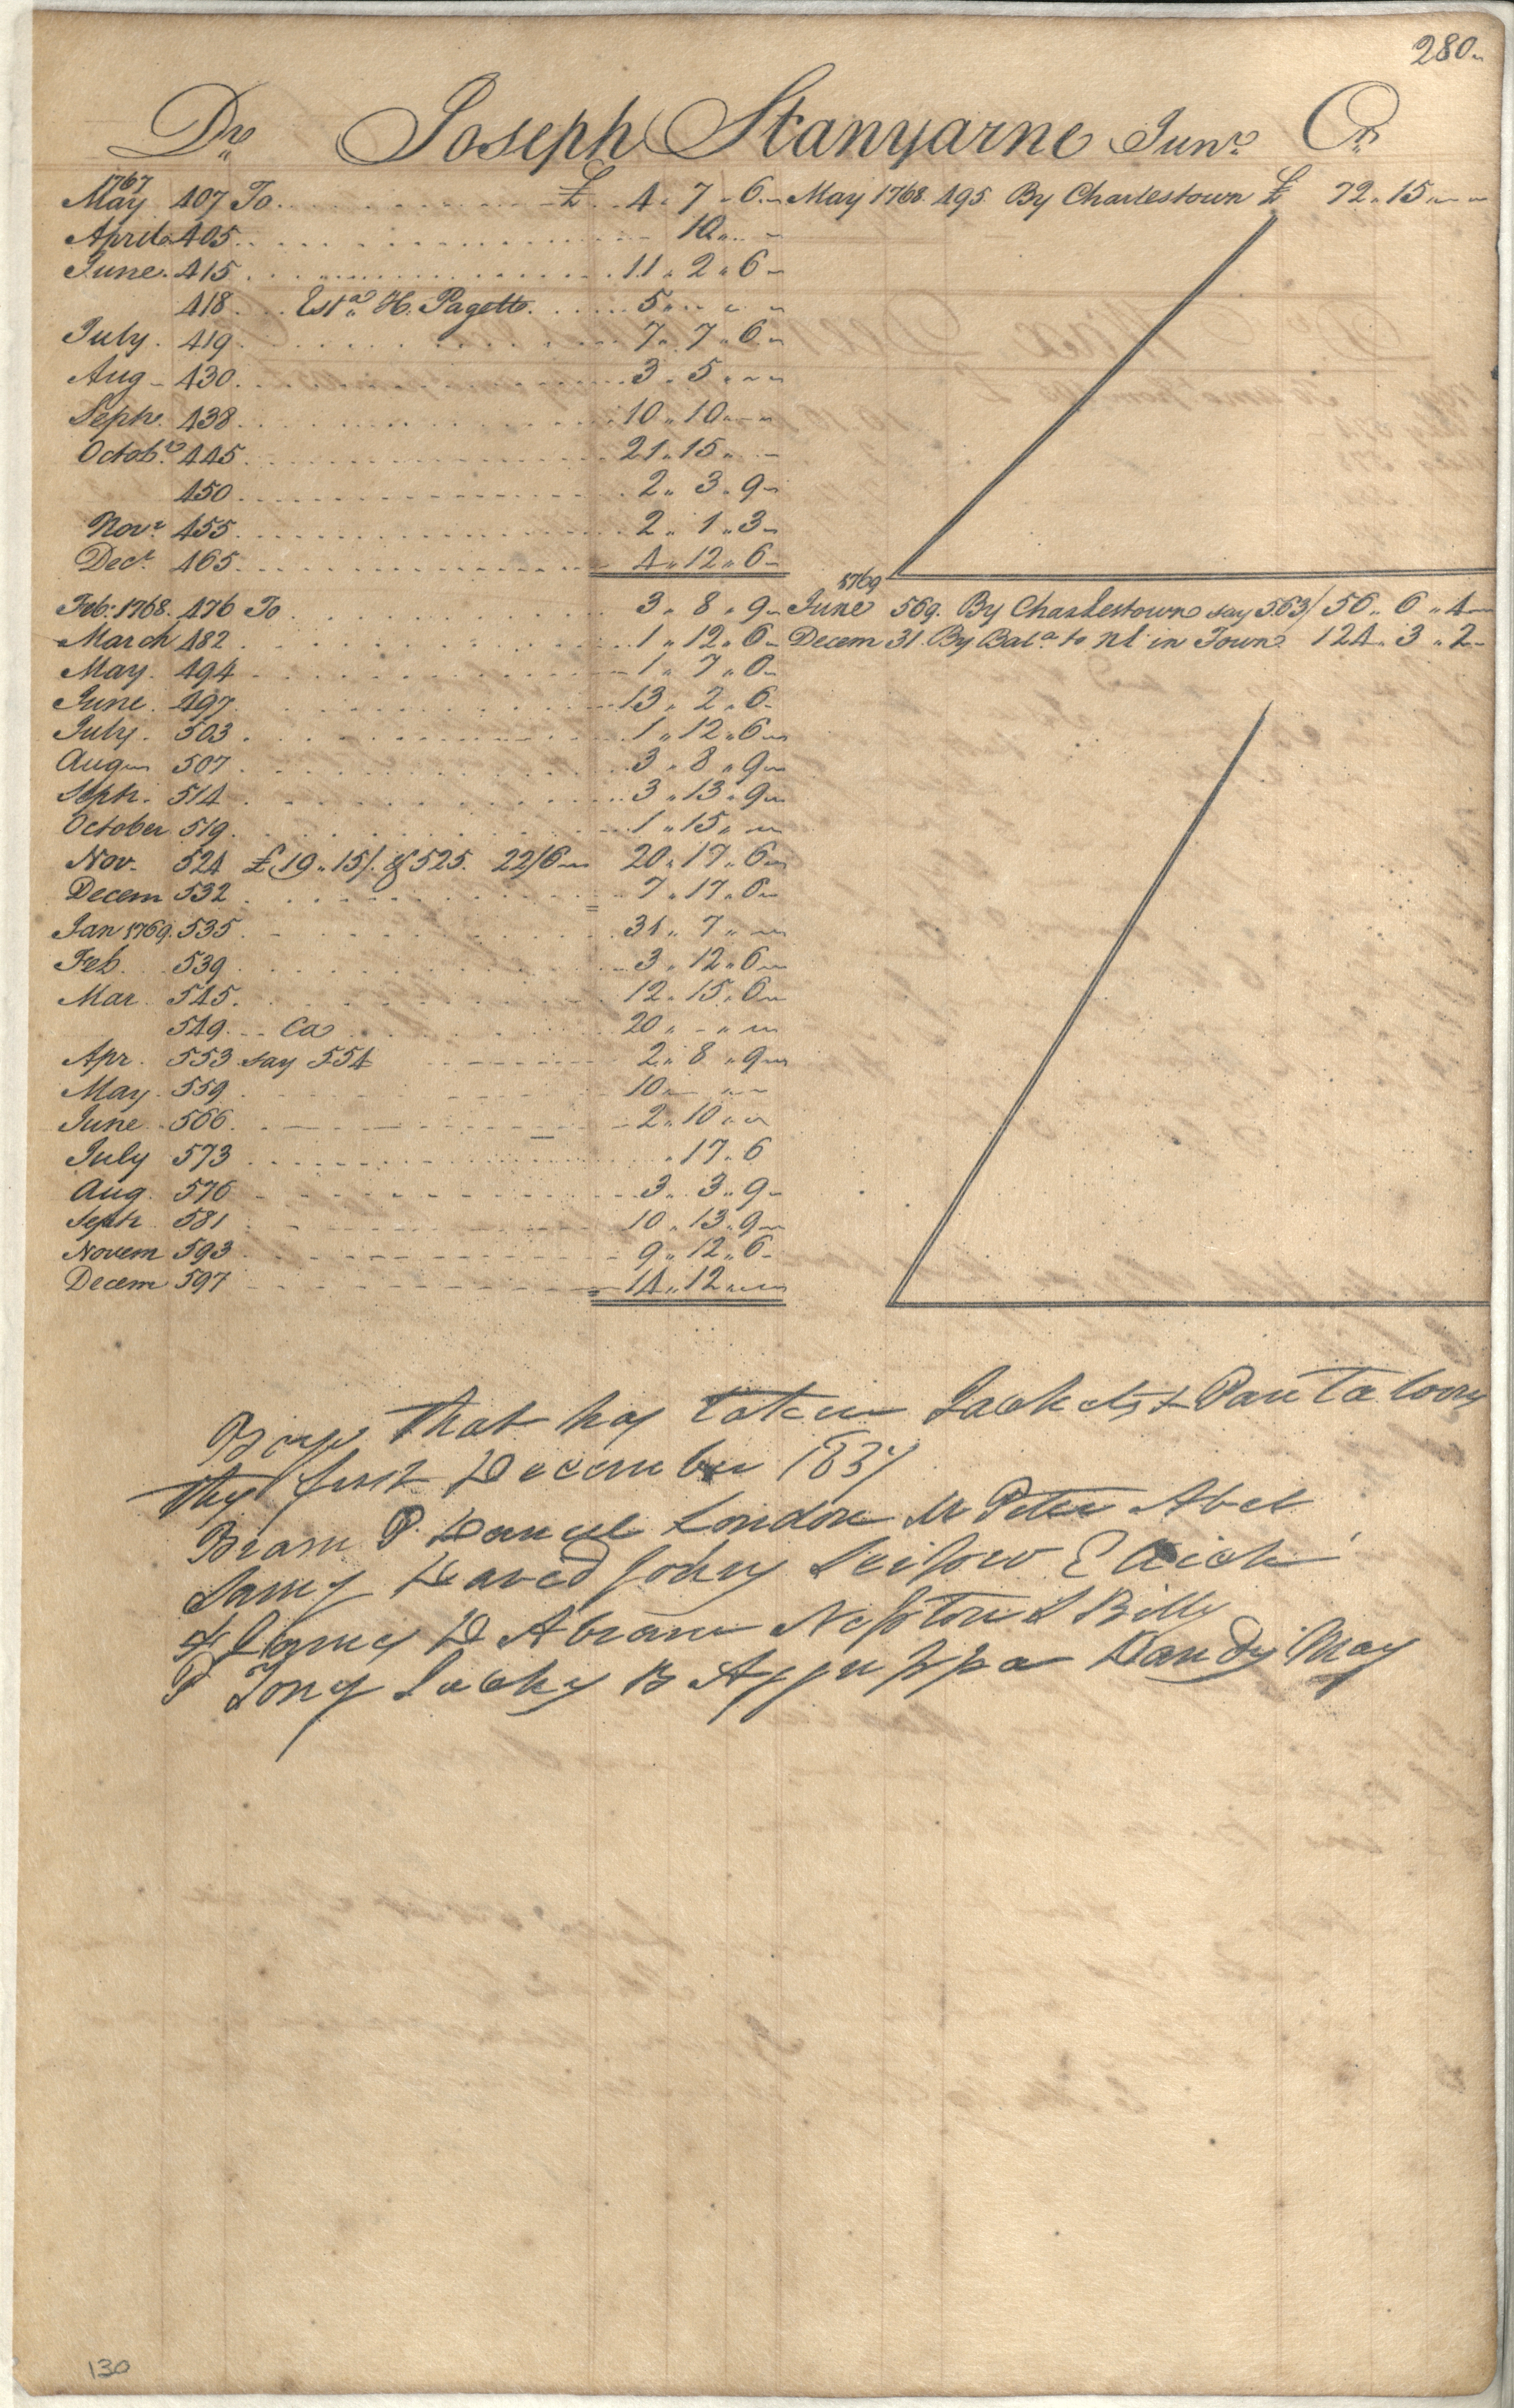 Plowden Weston's Business Ledger, page 280